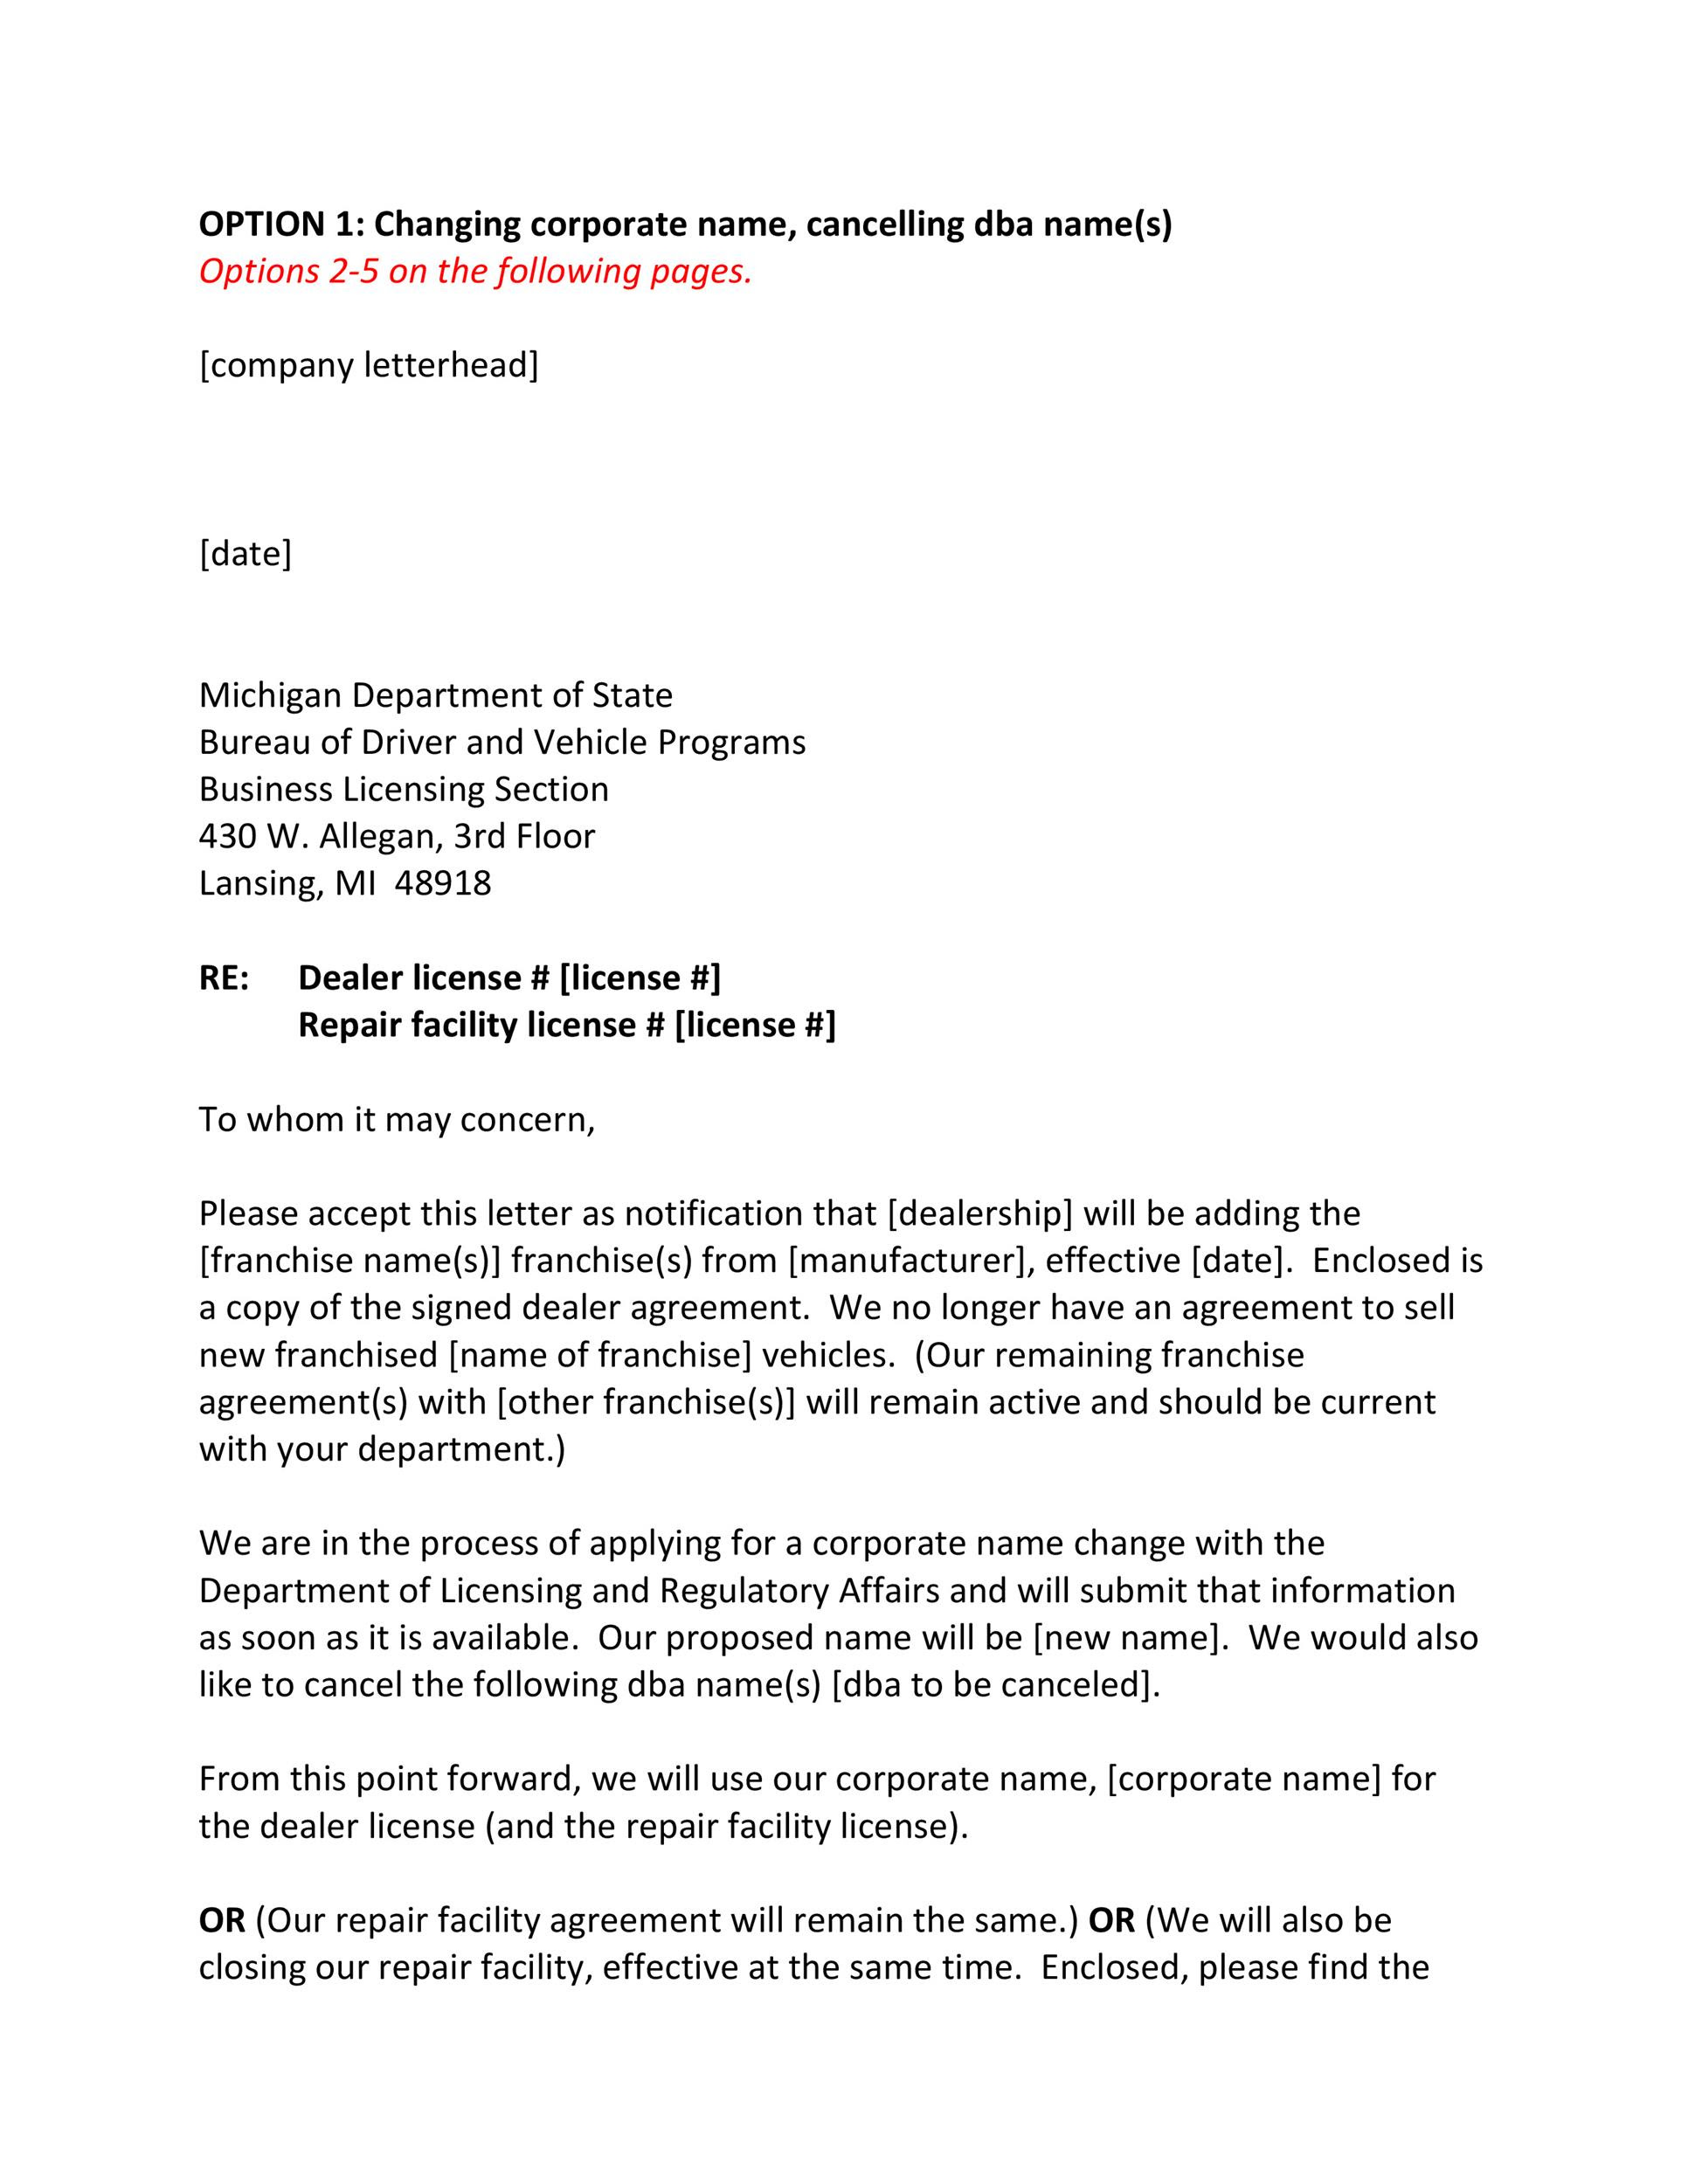 Cover Letter To Whom It May Concern Alternative from lh4.googleusercontent.com